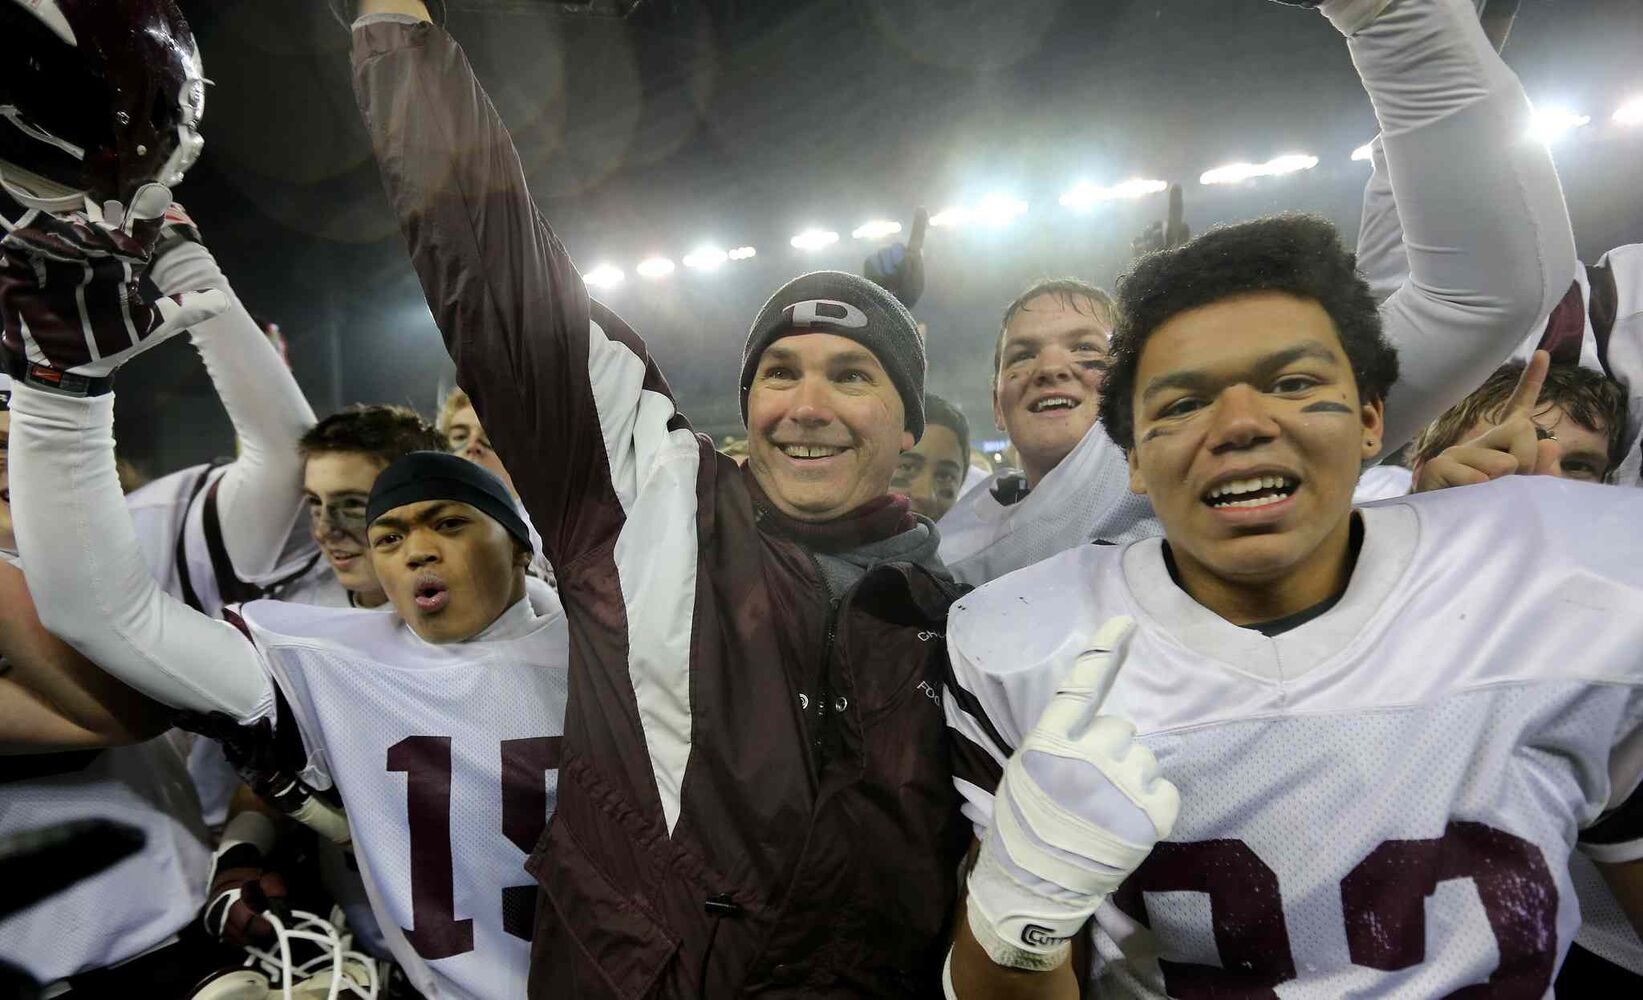 Calvin Diaz (left), head coach Peter Pura (centre) and Trevor Wright of the St.Paul's Crusaders AA football team celebrate their Free Press Bowl Championship victory over the Garden City Fighting Gophers. (Trevor Hagan / Winnipeg Free Press)